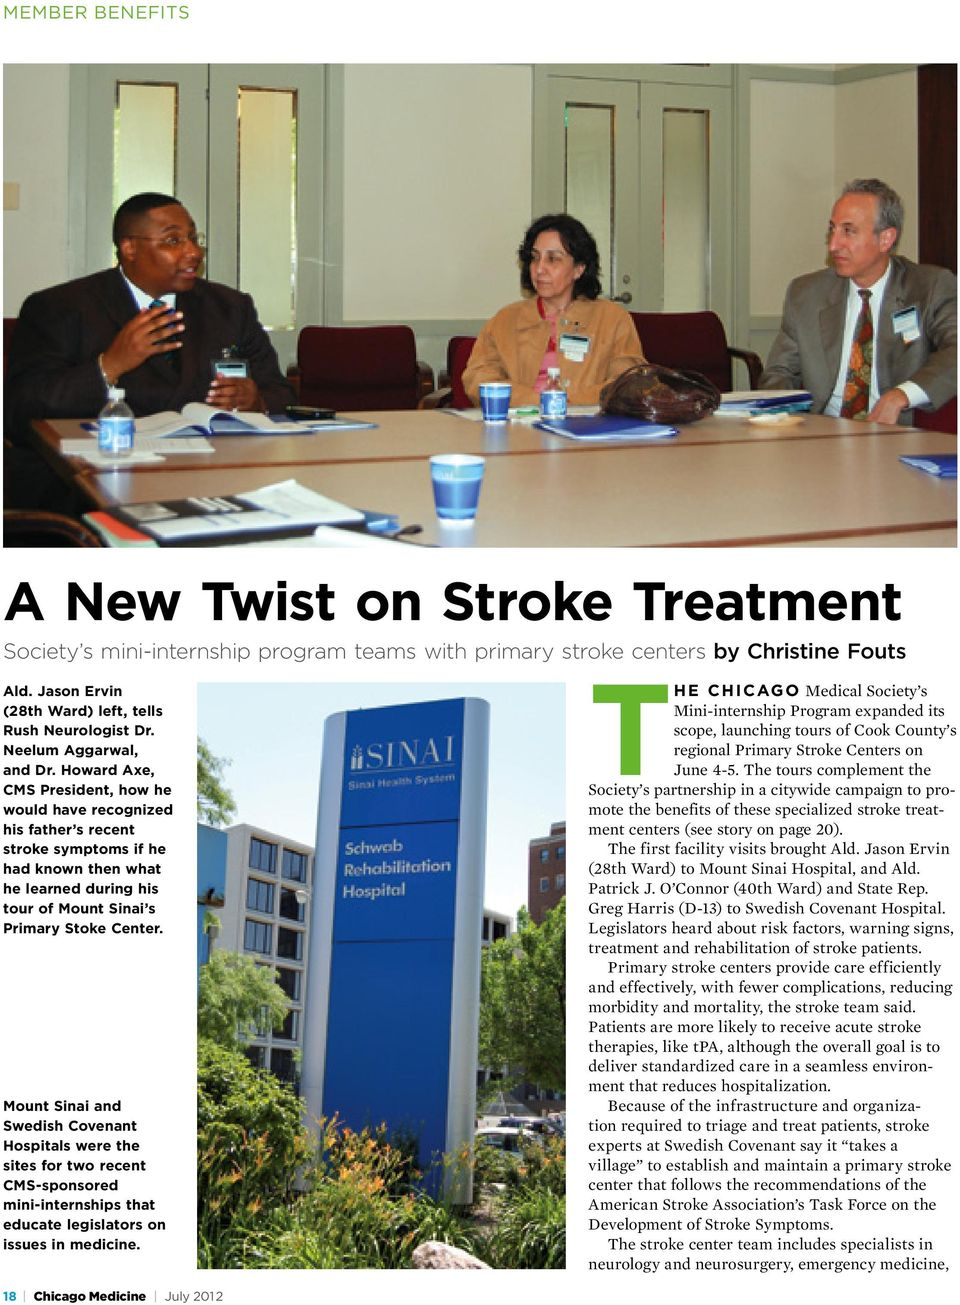 Howard Axe, CMS President, how he would have recognized his father s recent stroke symptoms if he had known then what he learned during his tour of Mount Sinai s Primary Stoke Center.